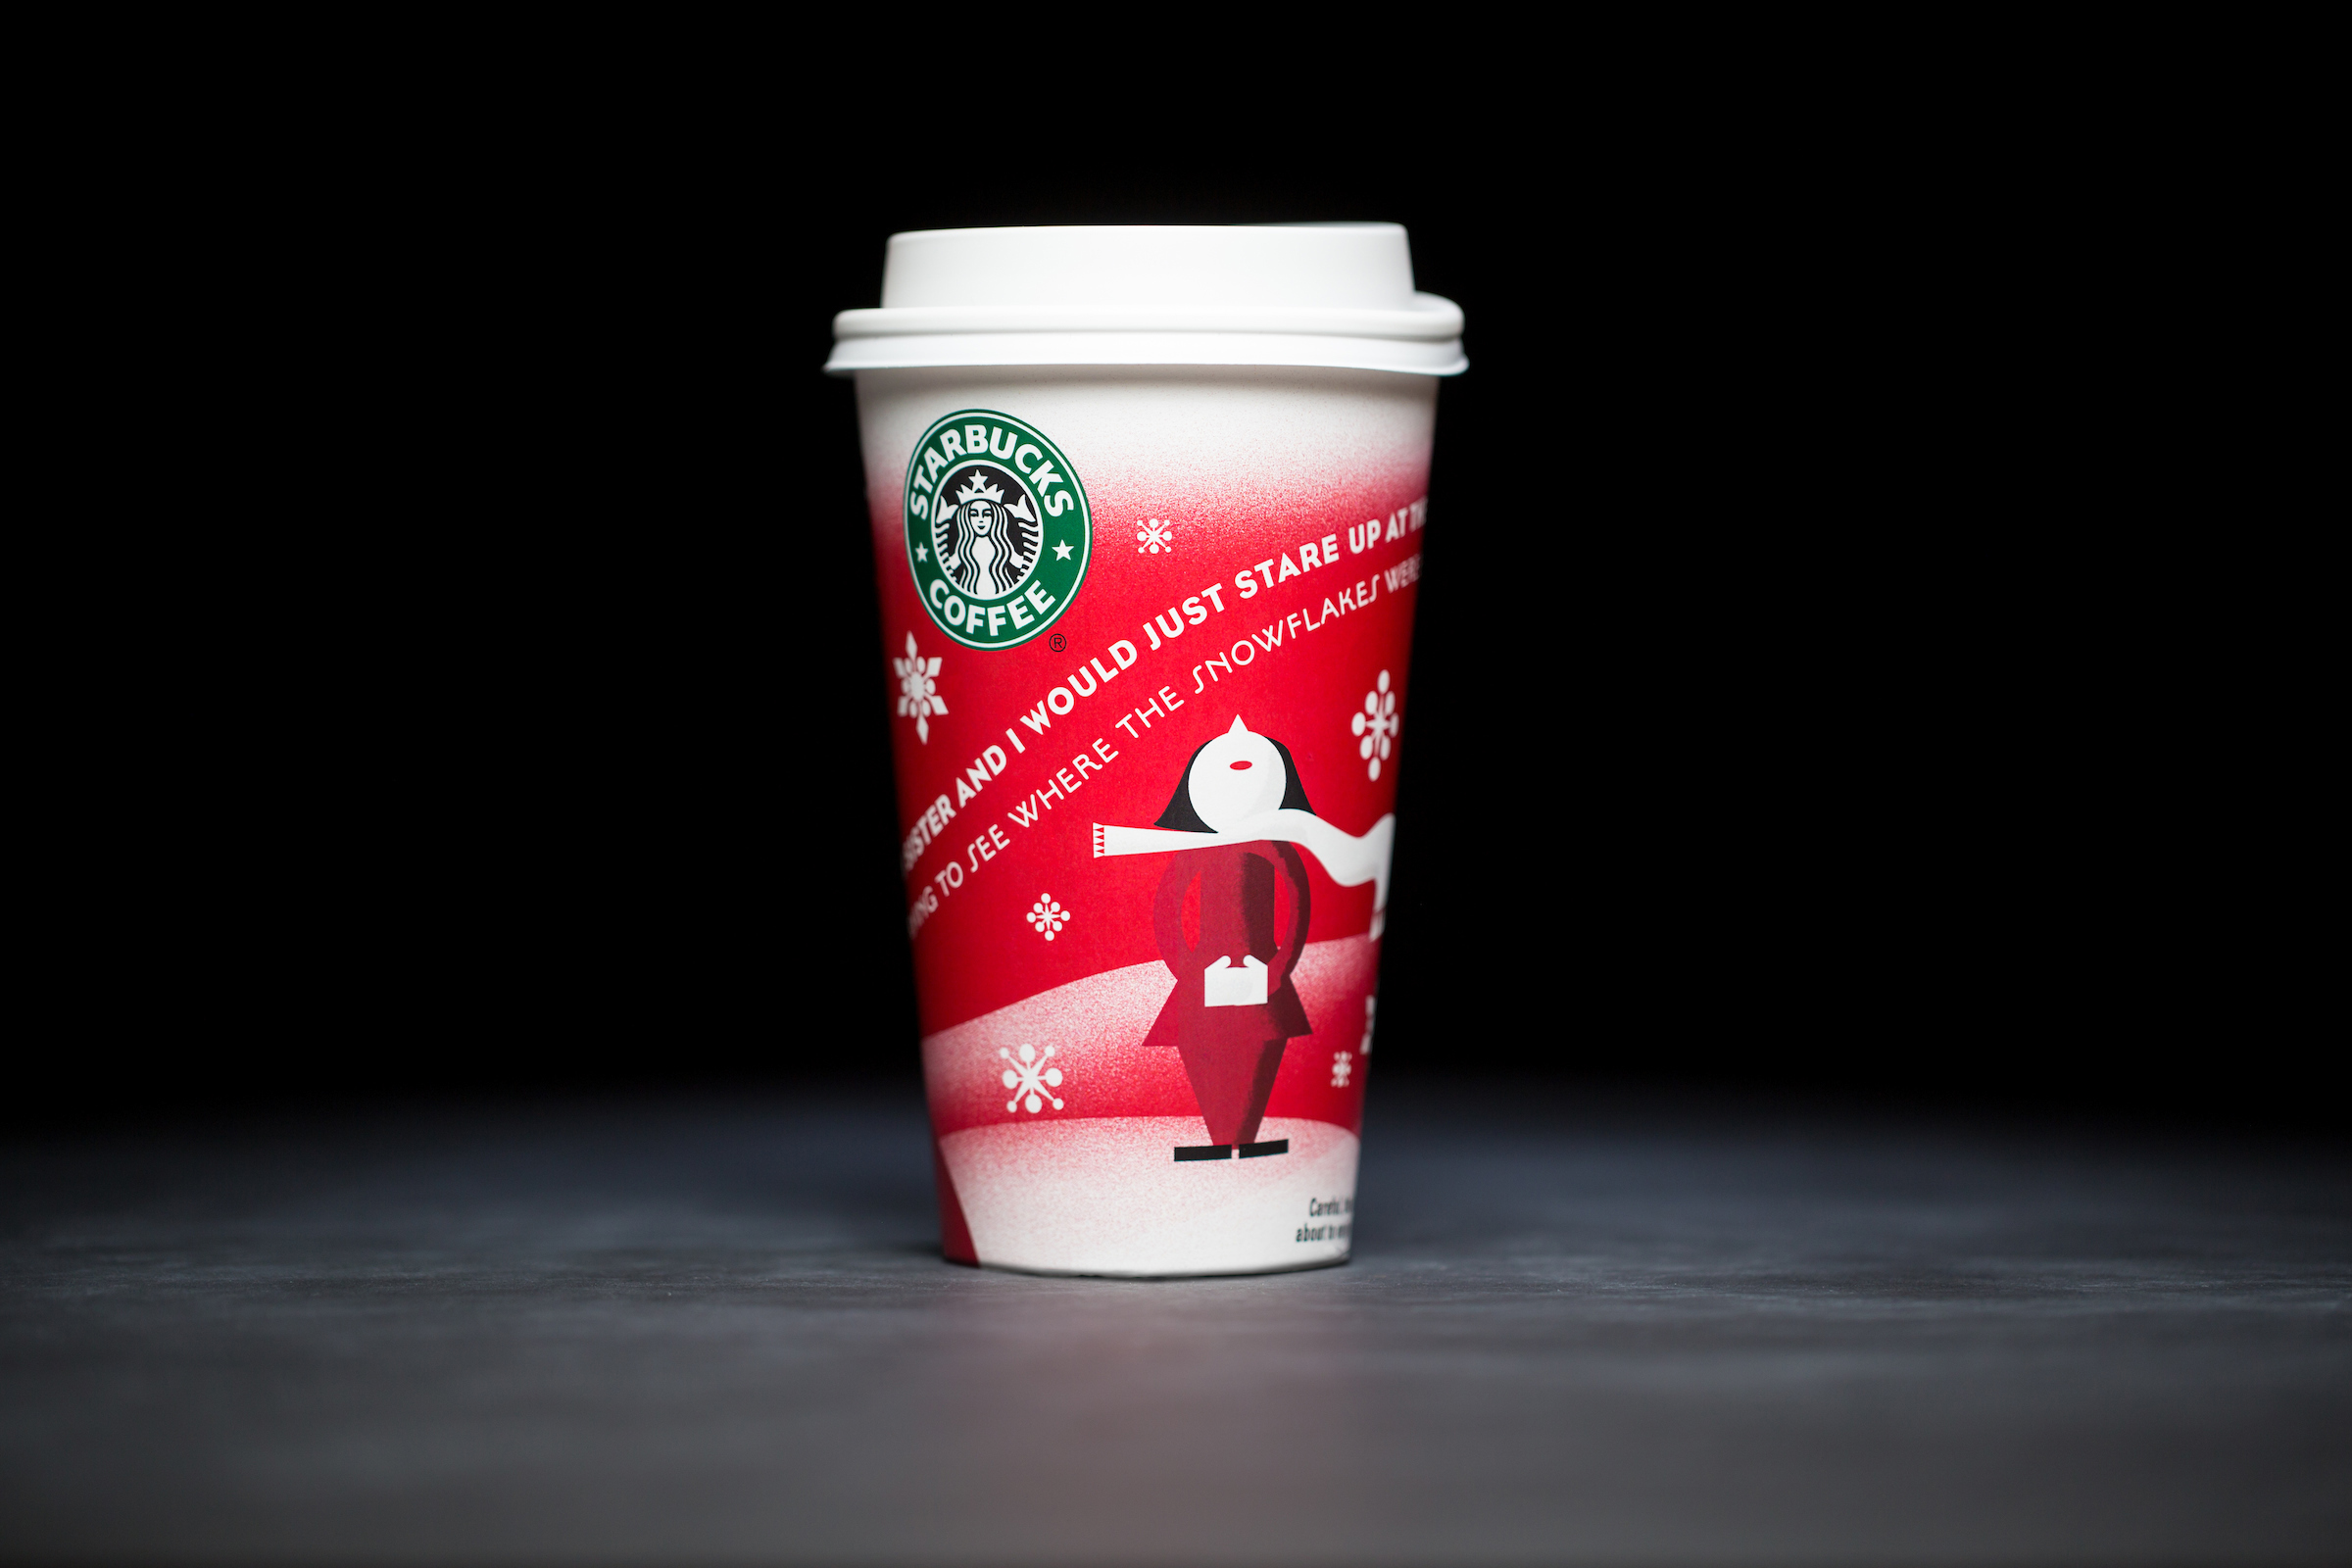 2010: For 20 years, Starbucks have released a range of holiday cup designs, most of them based around their world famous red cup. It's not easy to find the very first Starbucks holiday cups, which made their debut in stores in 1997. Few were saved, and electronic design files were lost in an earthquake in 2001. Even an Internet search is unyielding, with the cups having made their arrival long before the first selfie. But, we have them here! Click on for a photos of all 20 holidays cup designs. (Image: Joshua Trujillo/Cover Images)